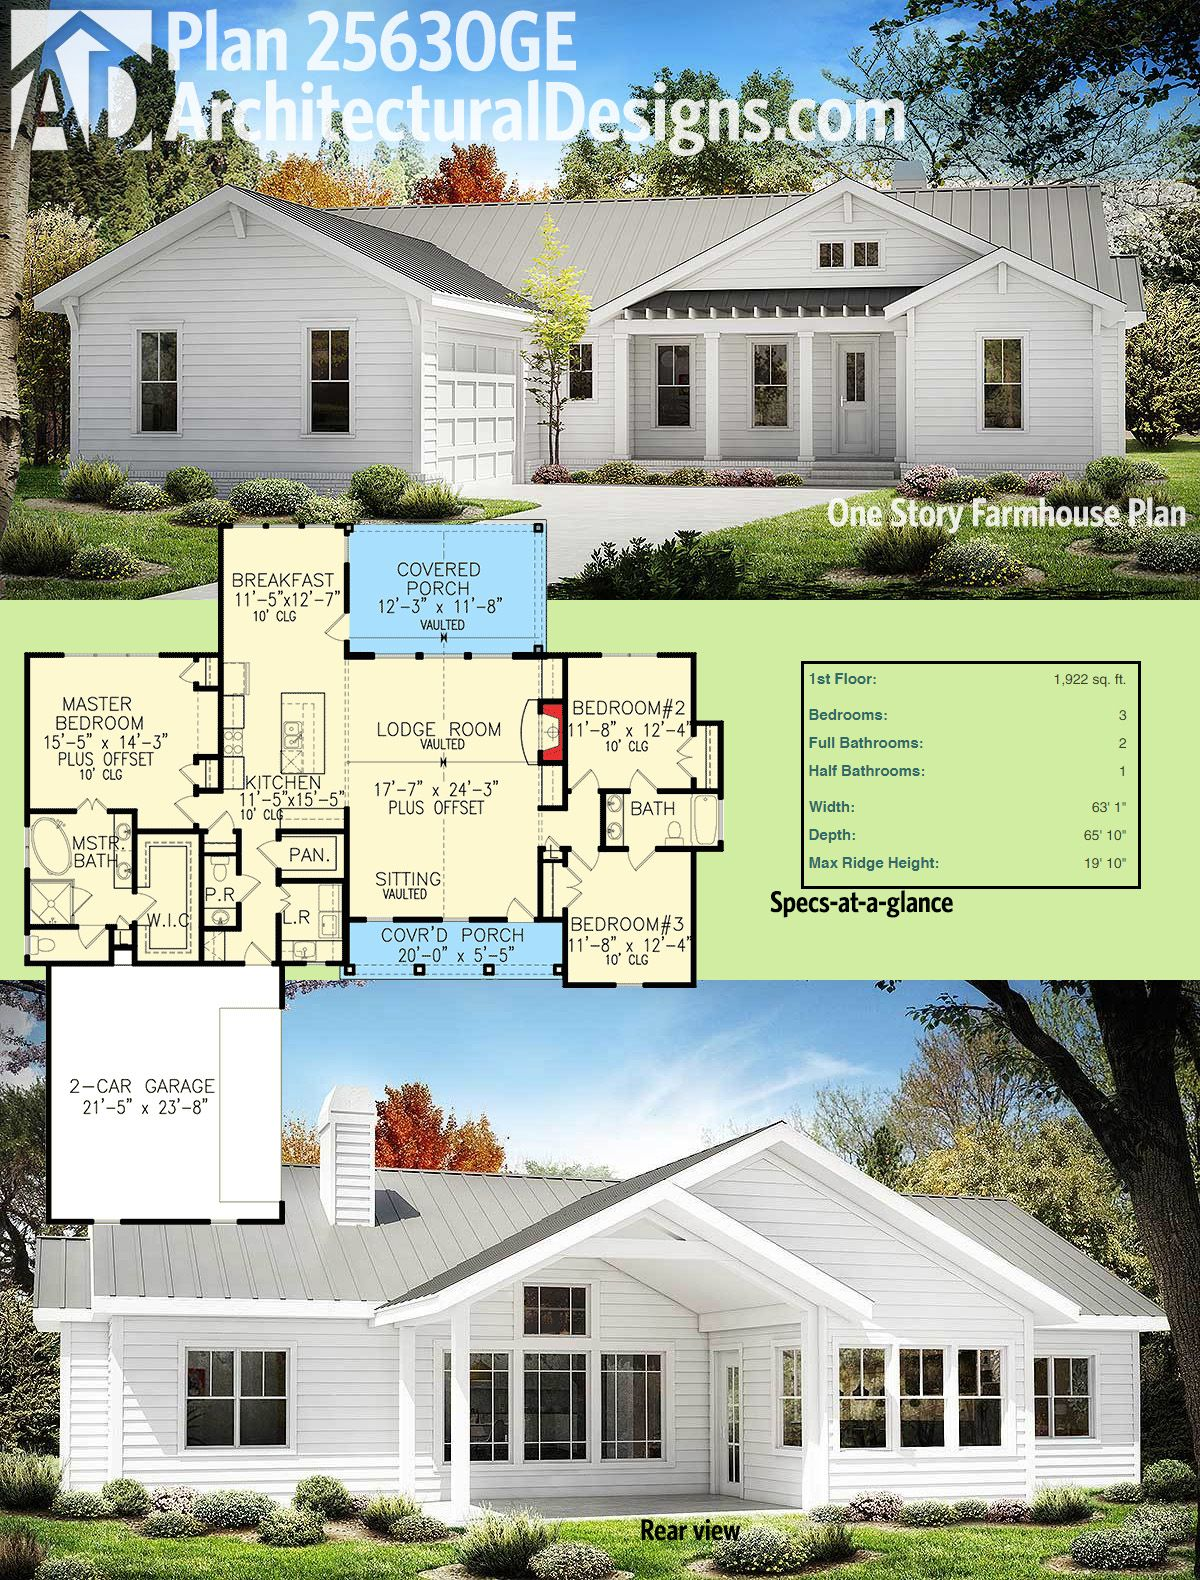 Architectural Designs One Story Modern Farmhouse Plan 25630GE Gives You 3  Beds And Over 1,900 Square